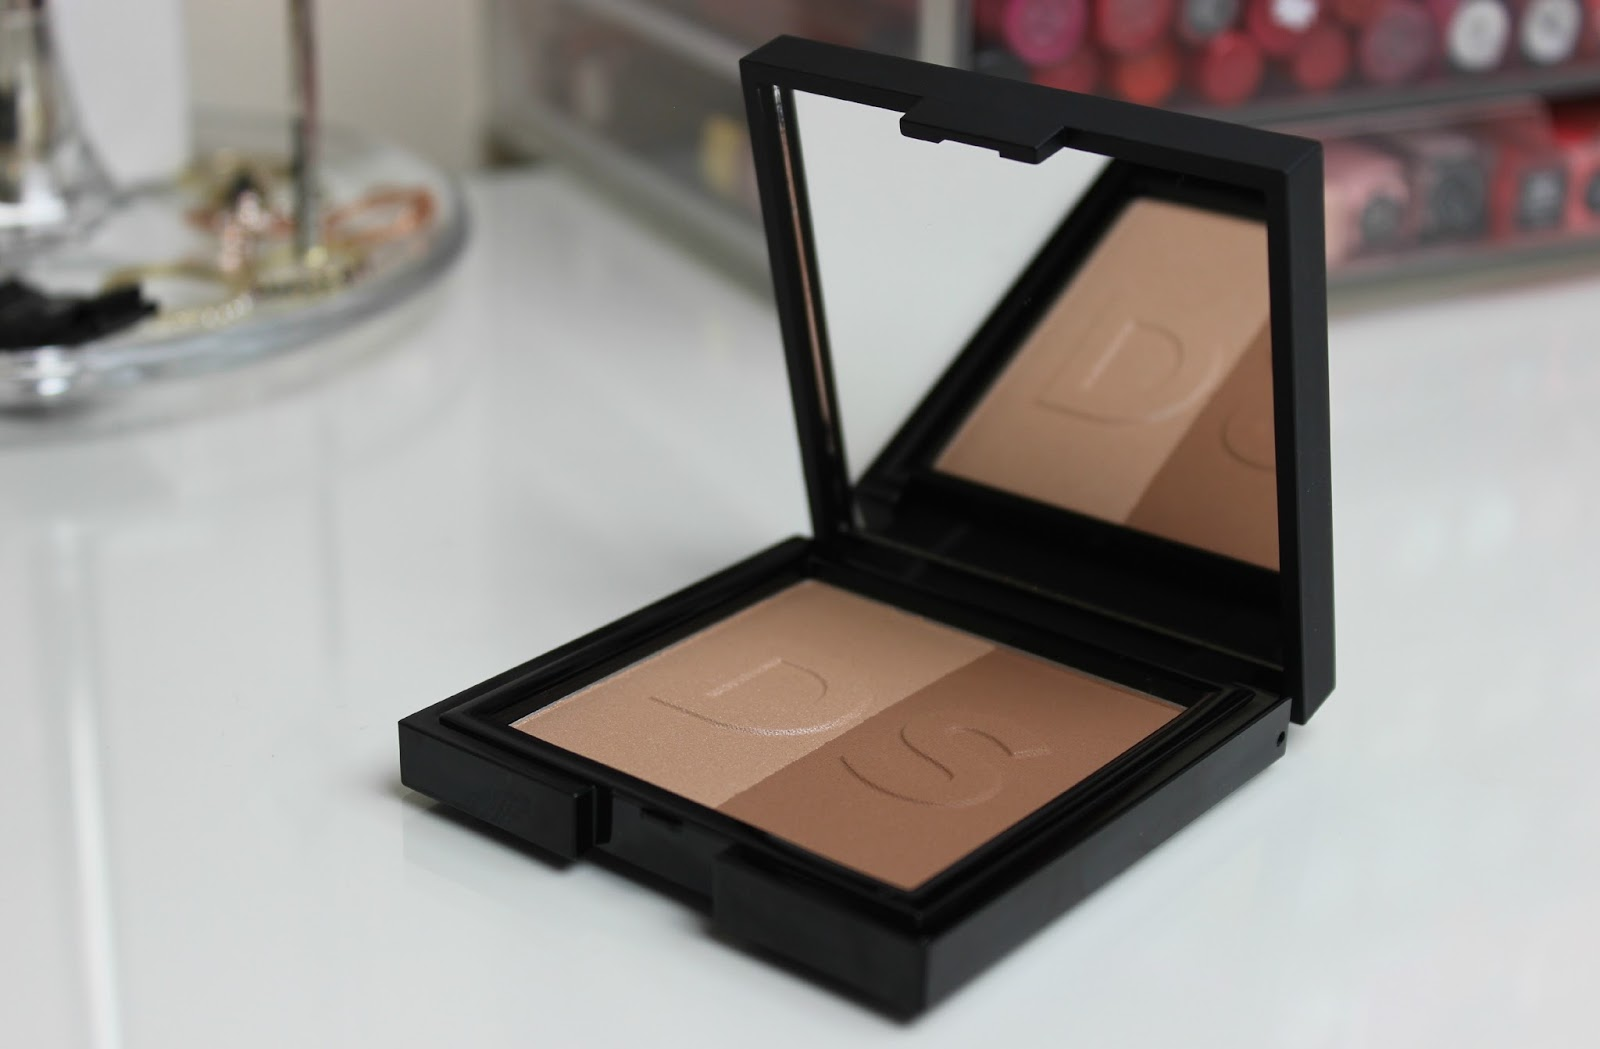 A picture of Daniel Sandler Sculpt & Slim-Effect Contour Face Powder